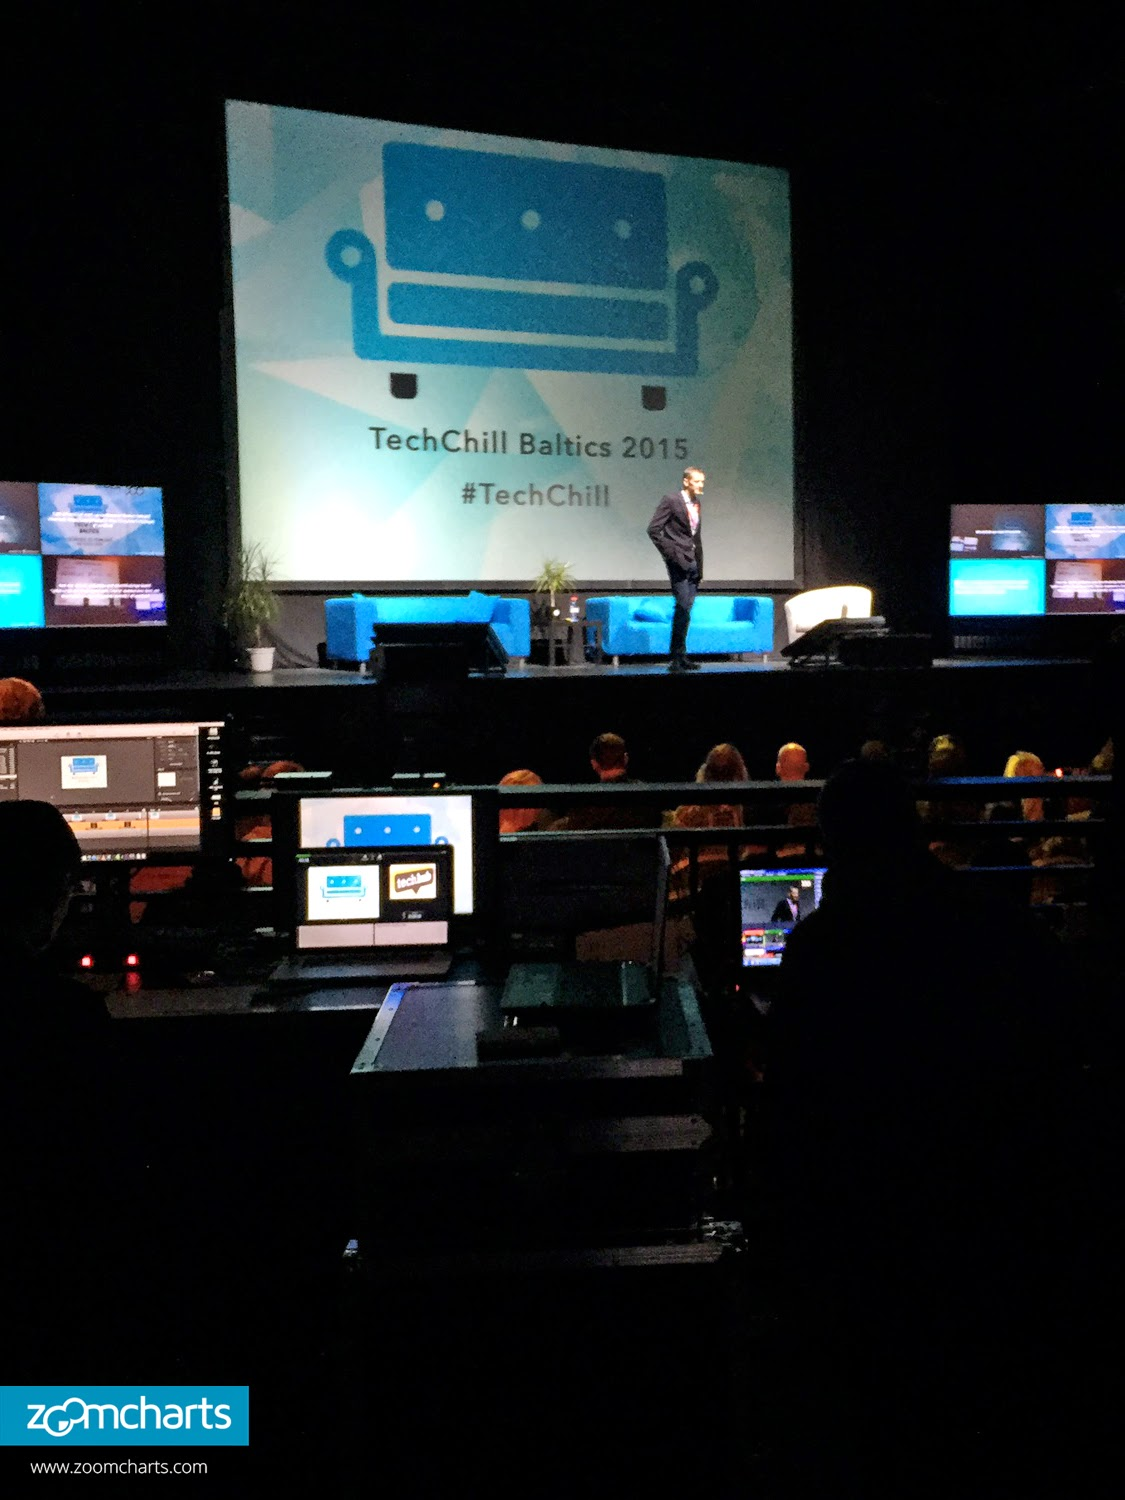 andrew hoag president of ferocia inc speaks about fundraising as part of his intriguing presentation at the techchill baltics 2015 tech startup